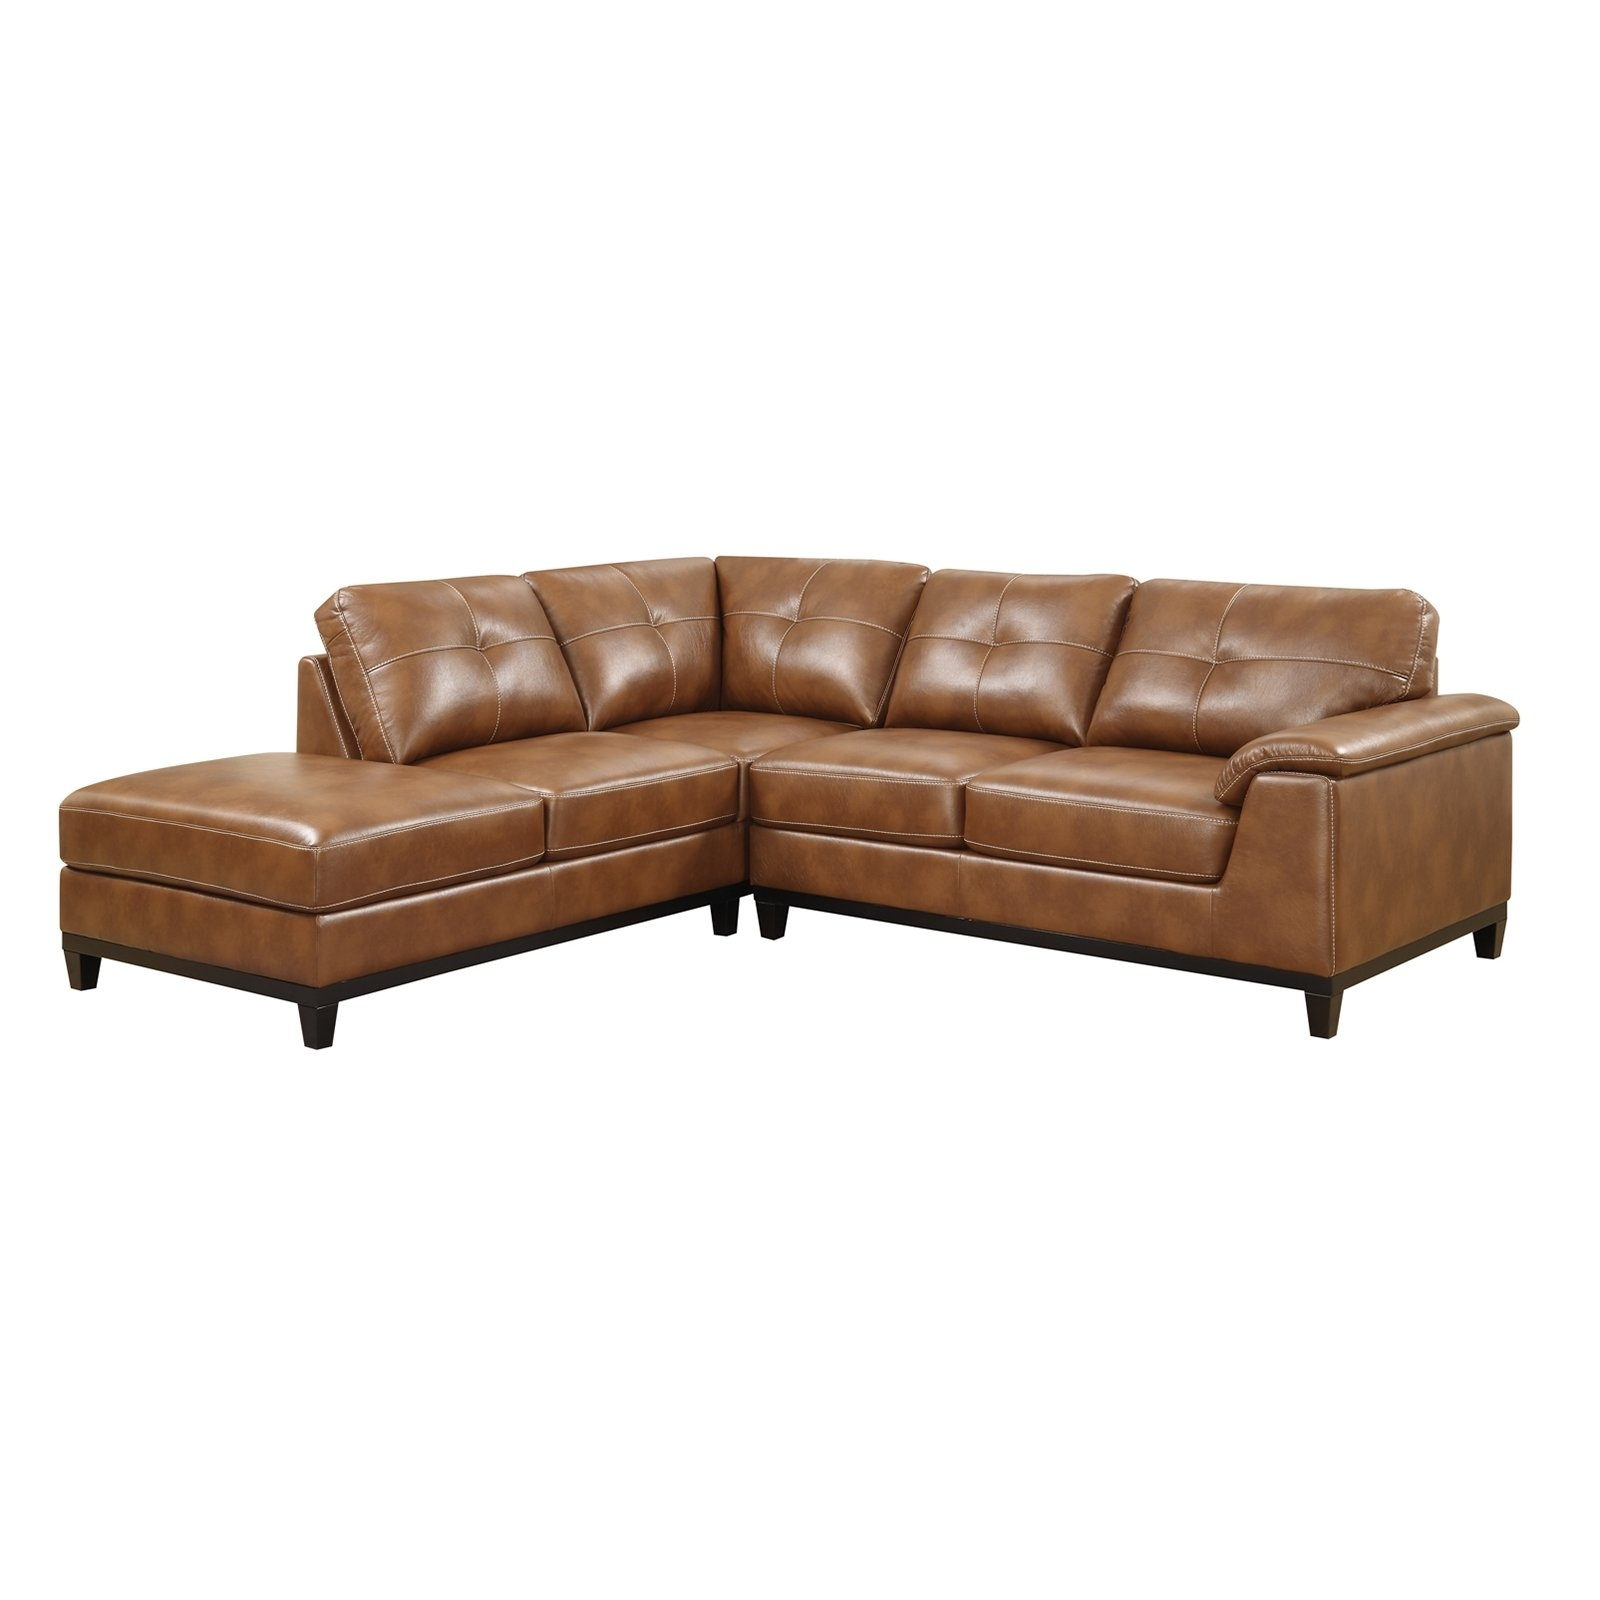 Dufresne Sectional Sofas For Most Recently Released Chelsea Home Furniture Lena Sectional Sofa – Sectional Sofas At (View 1 of 15)